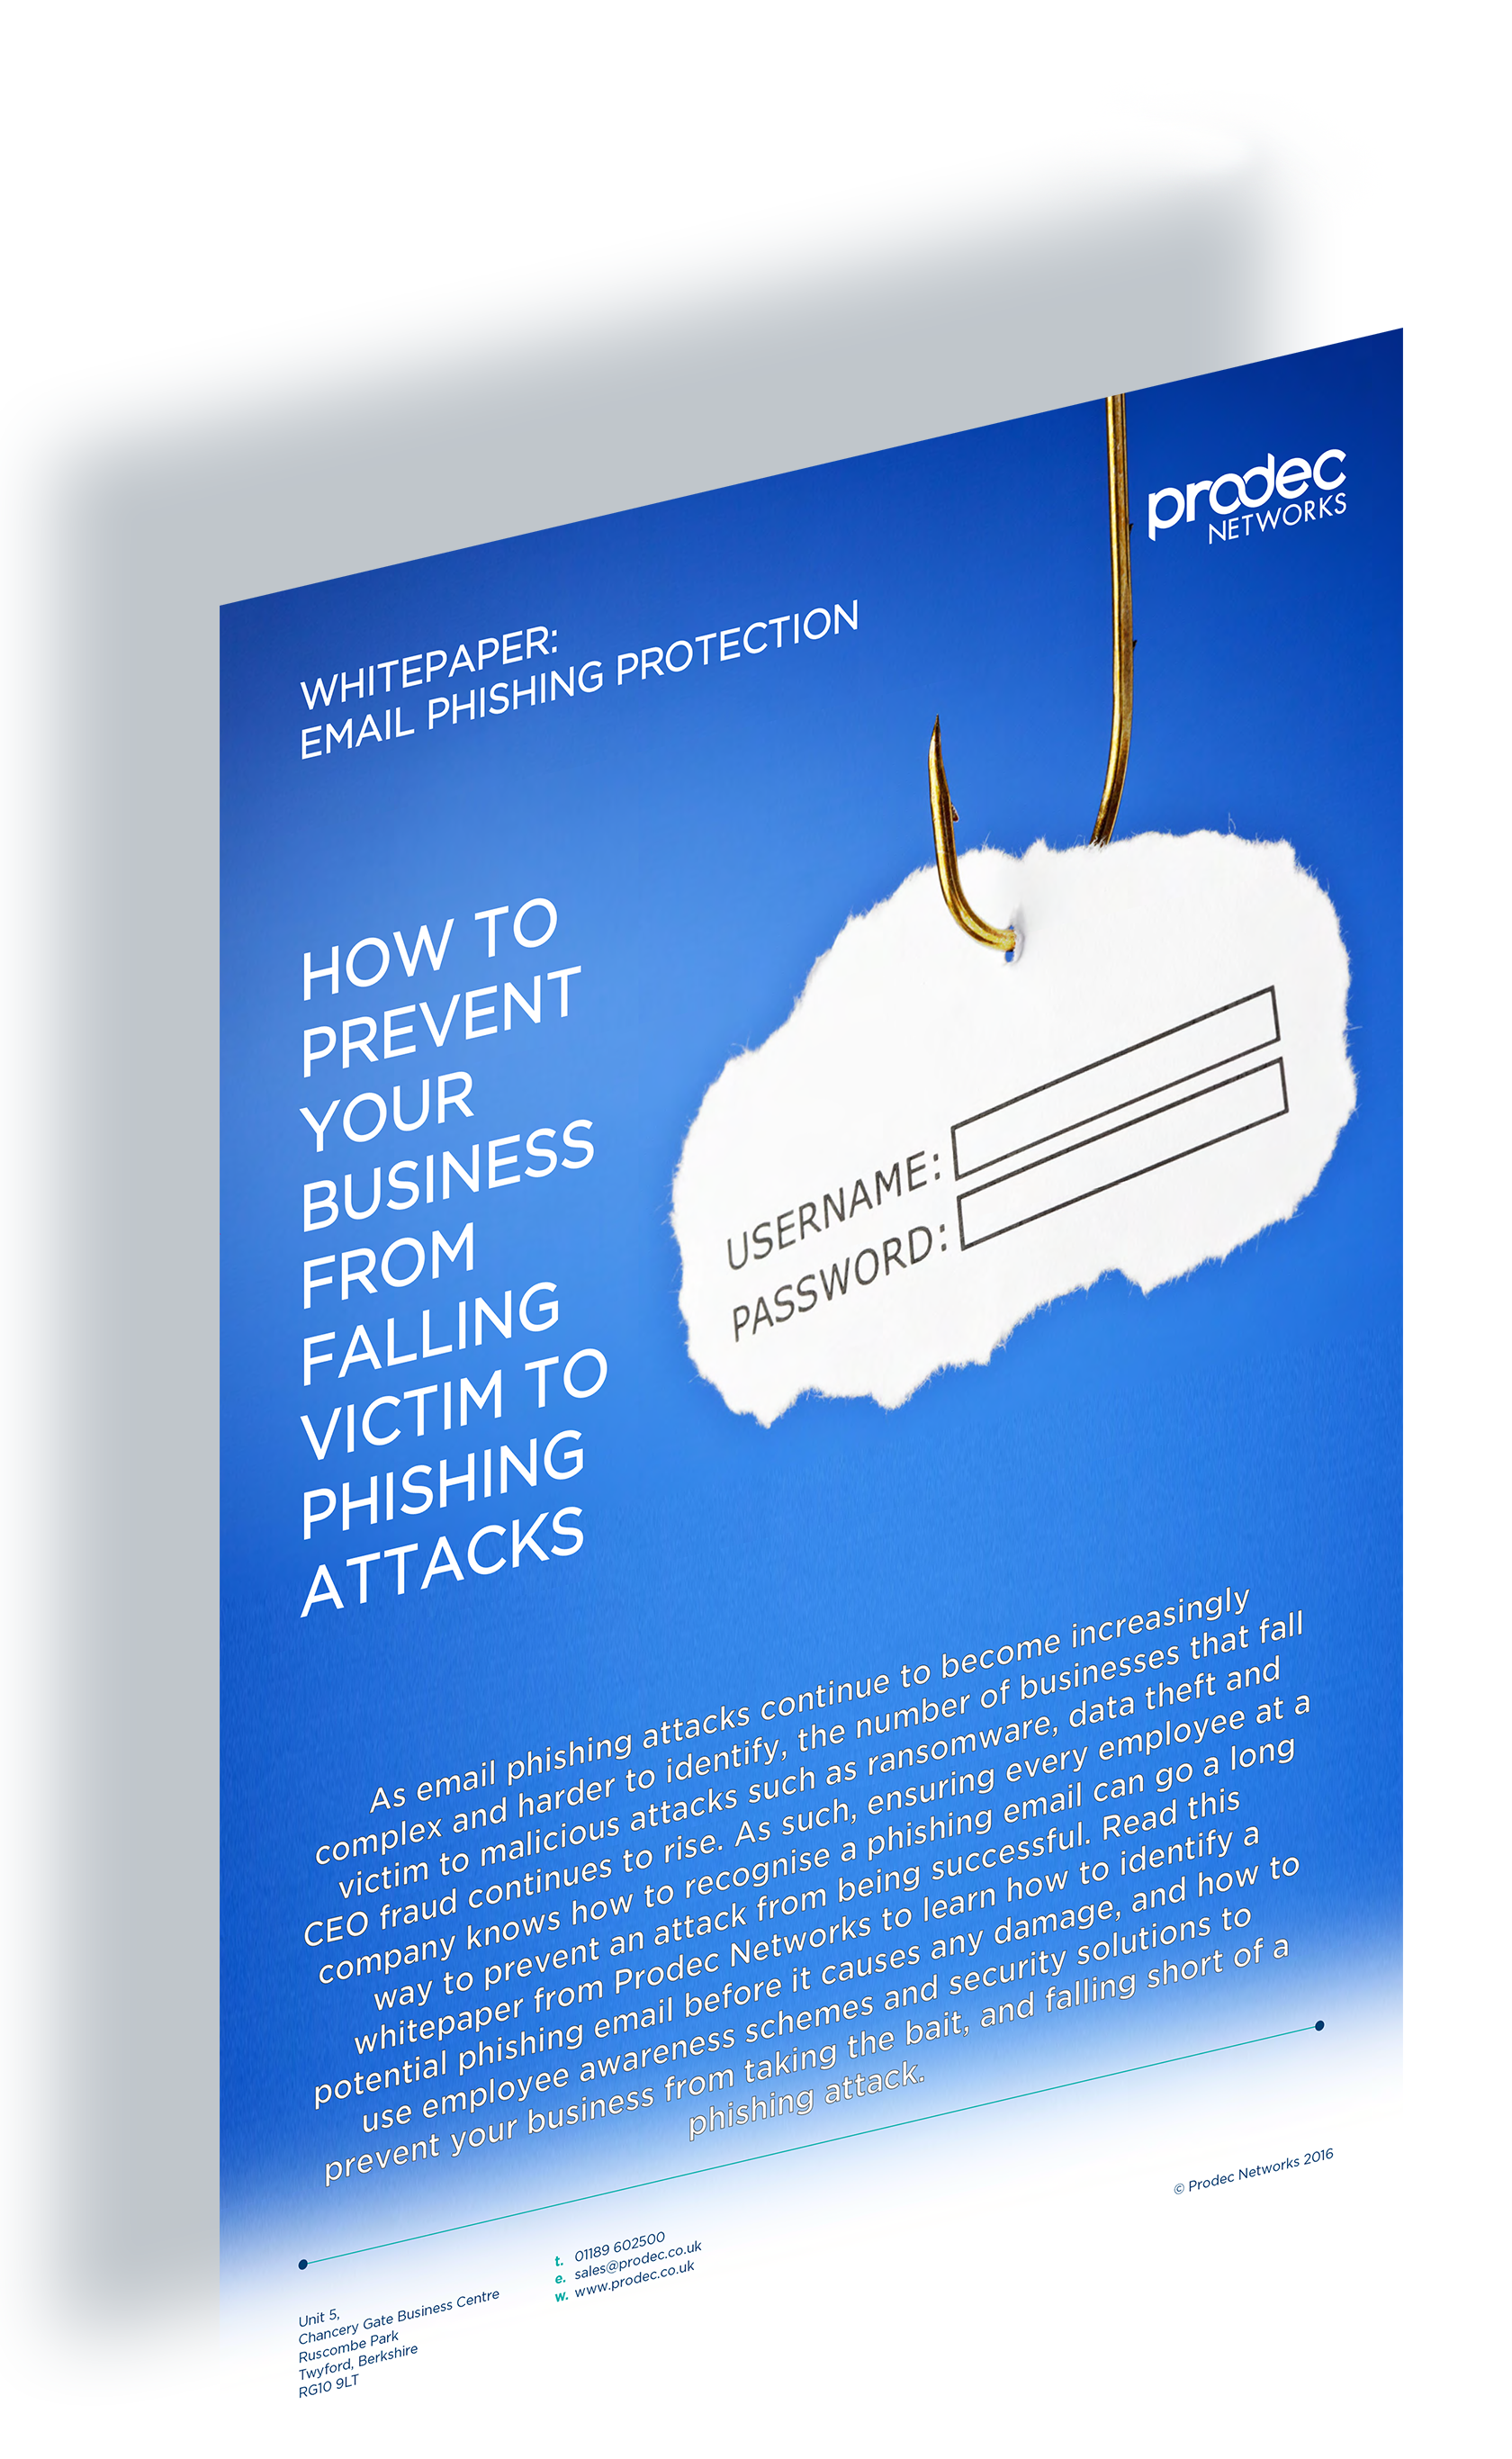 Phishing_Whitepaper_cover_image_v2-1.png